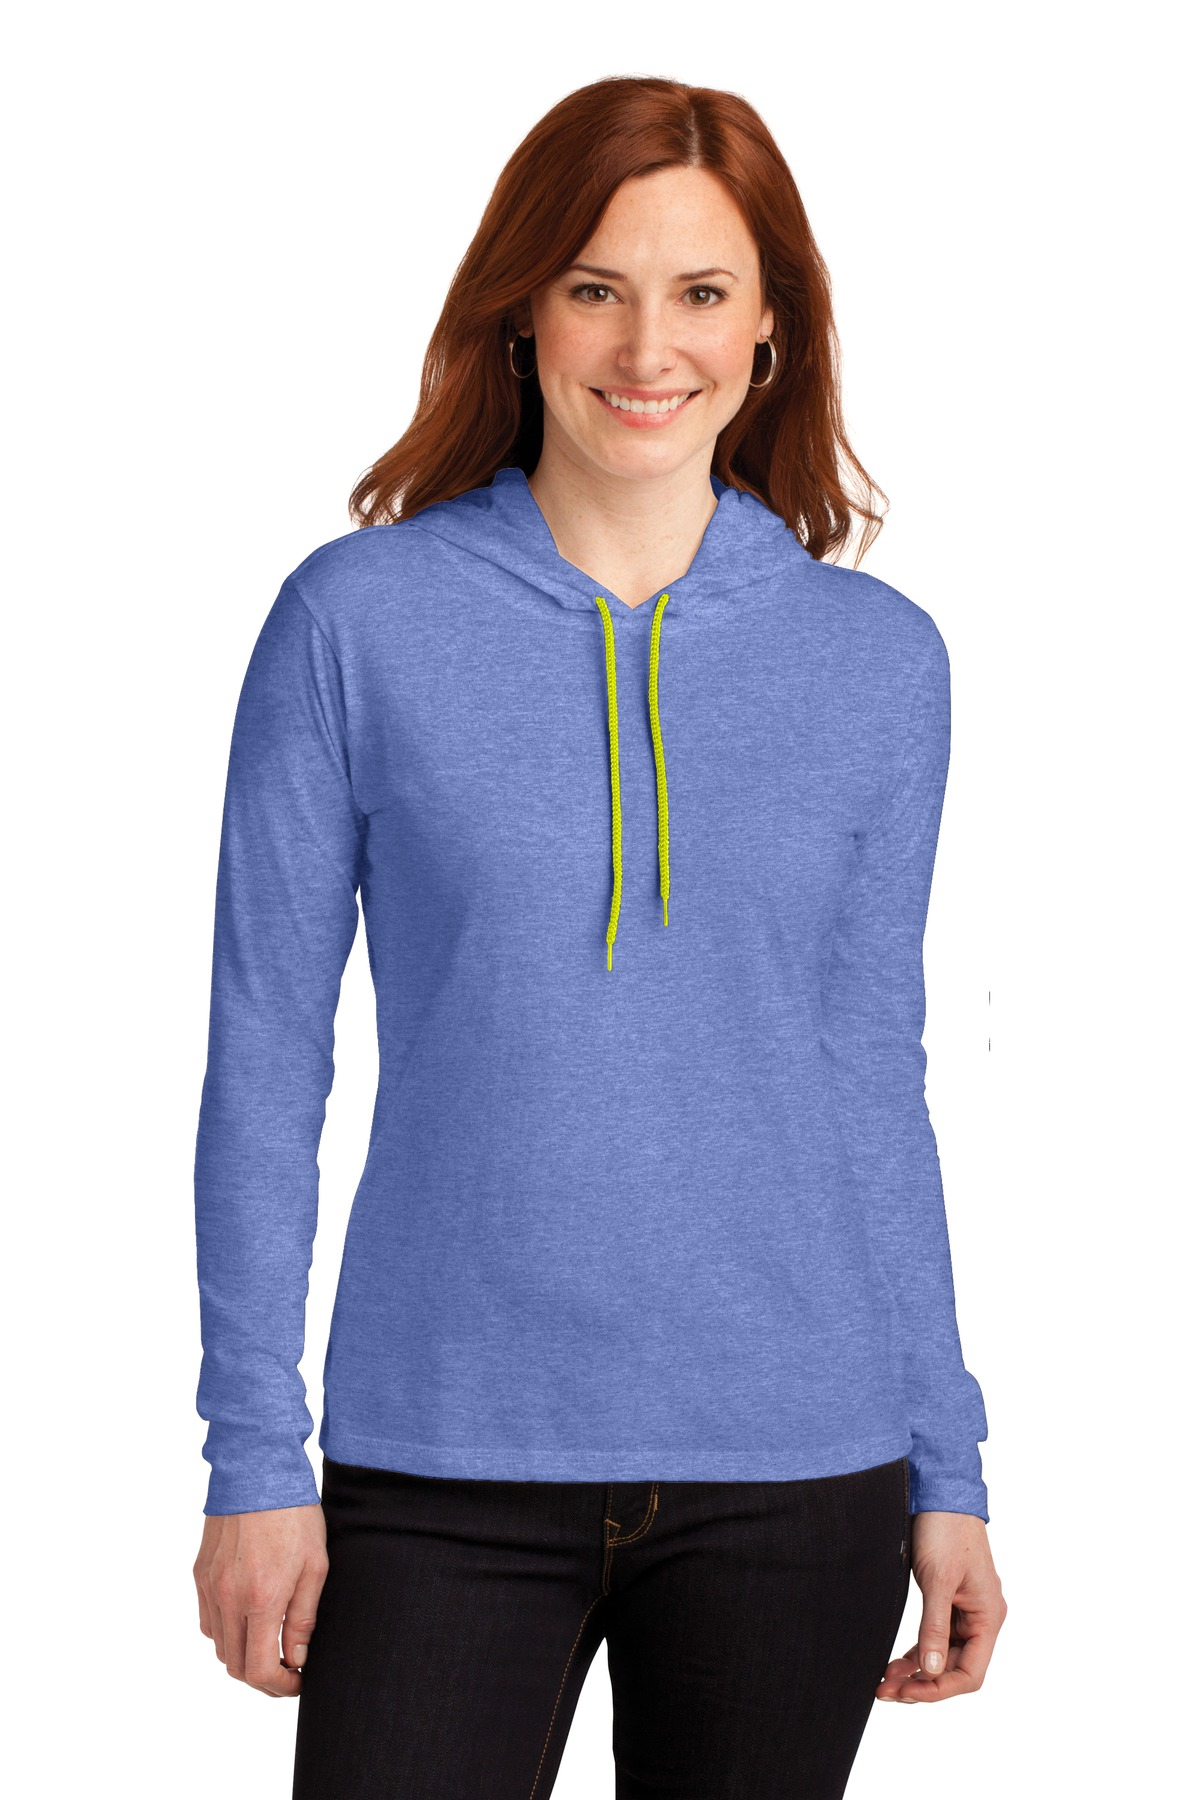 Anvil ®  Ladies 100% Combed Ring Spun Cotton Long Sleeve Hooded T-Shirt. 887L - Heather Blue/ Neon Yellow